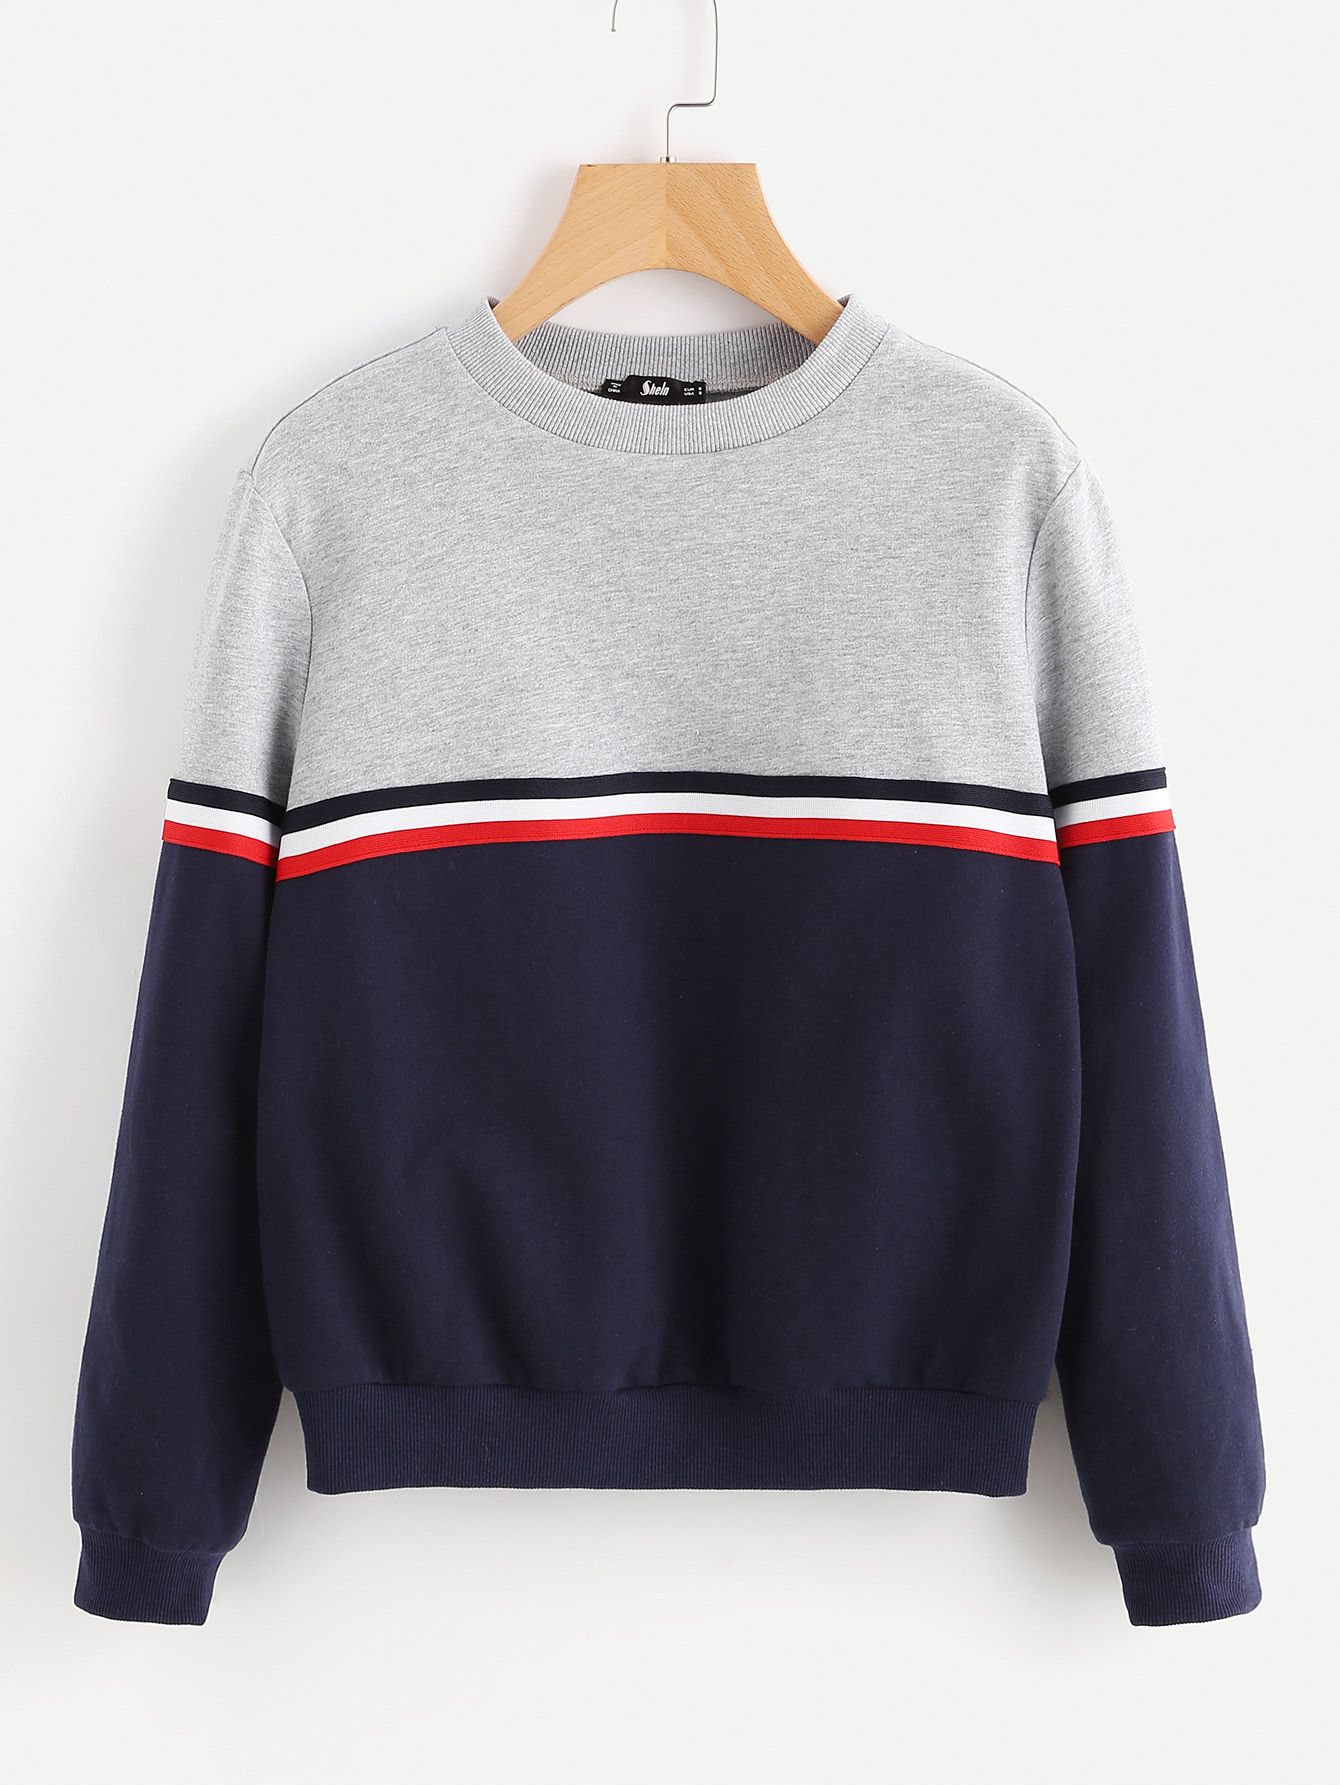 Striped Woven Tape Detail Two Tone Sweatshirt SheIn